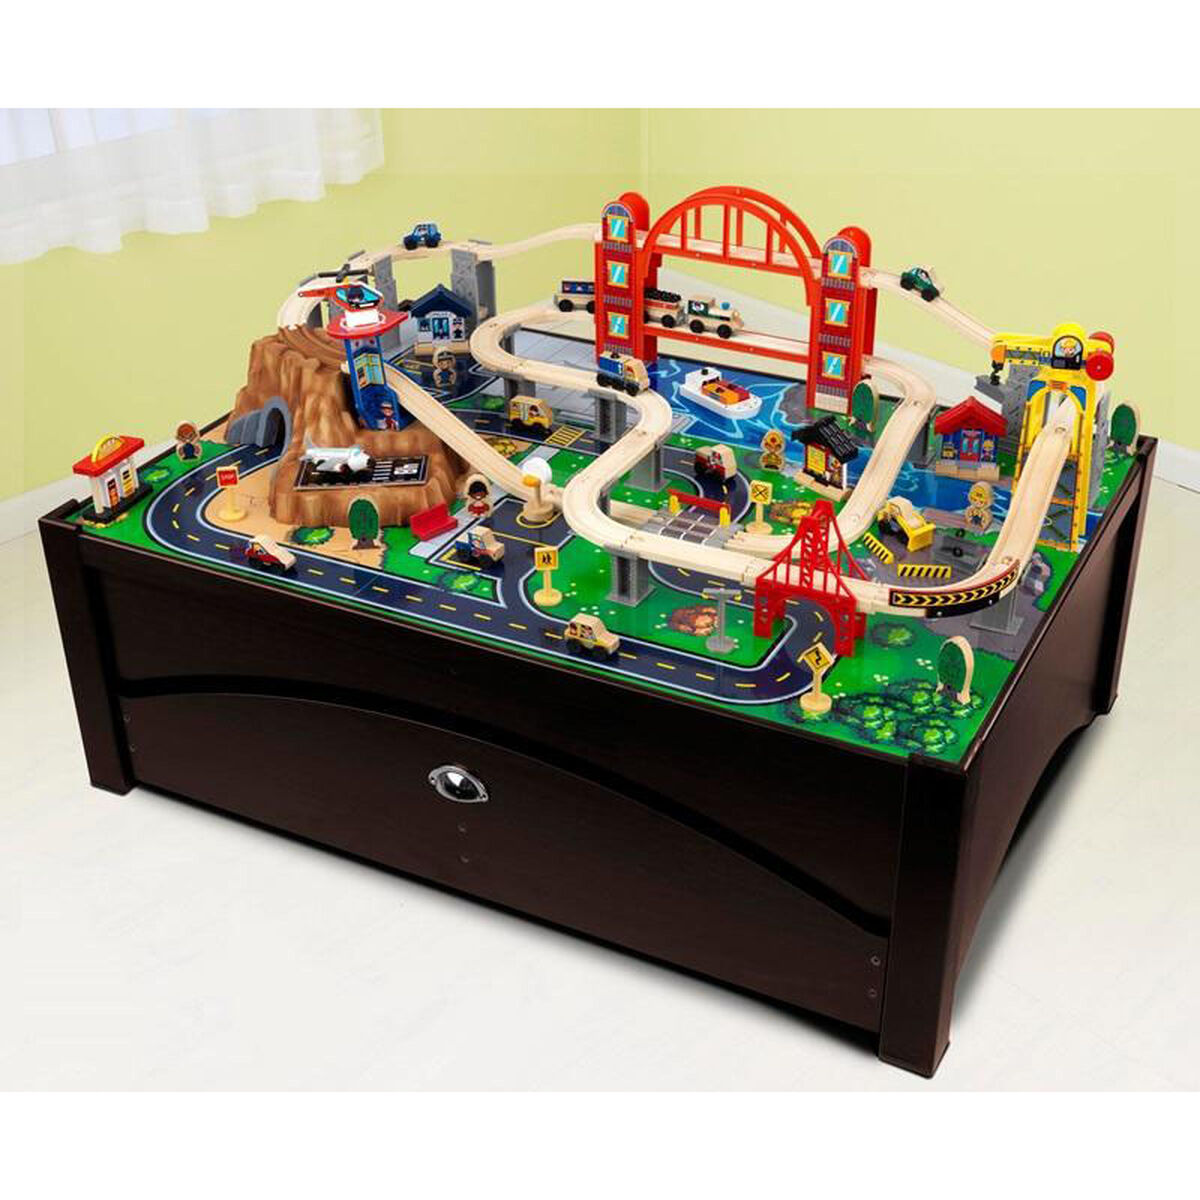 Our Kids Solid Wood Train Table And Metropolis Set With Trundle Drawer For Storage